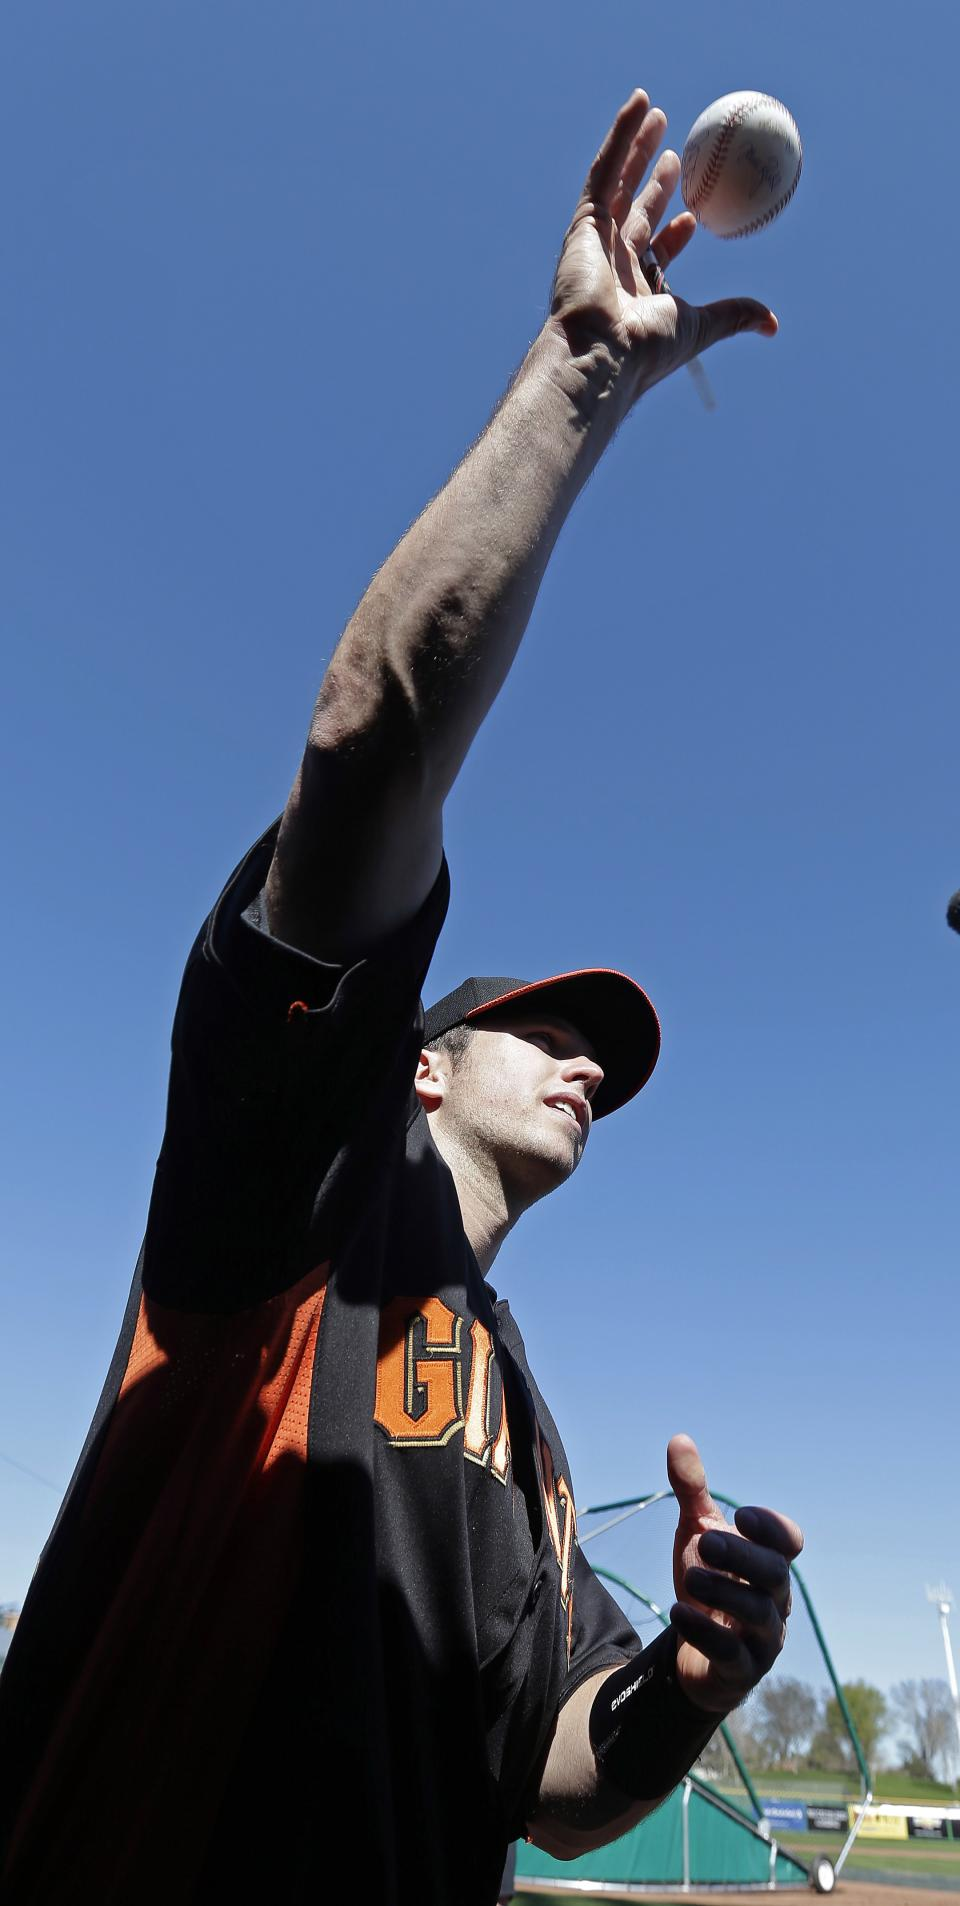 San Francisco Giants' Buster Posey tosses a baseball back to a fan after autographing it following a spring training baseball workout Wednesday, Feb. 13, 2013, in Scottsdale, Ariz. (AP Photo/Darron Cummings)